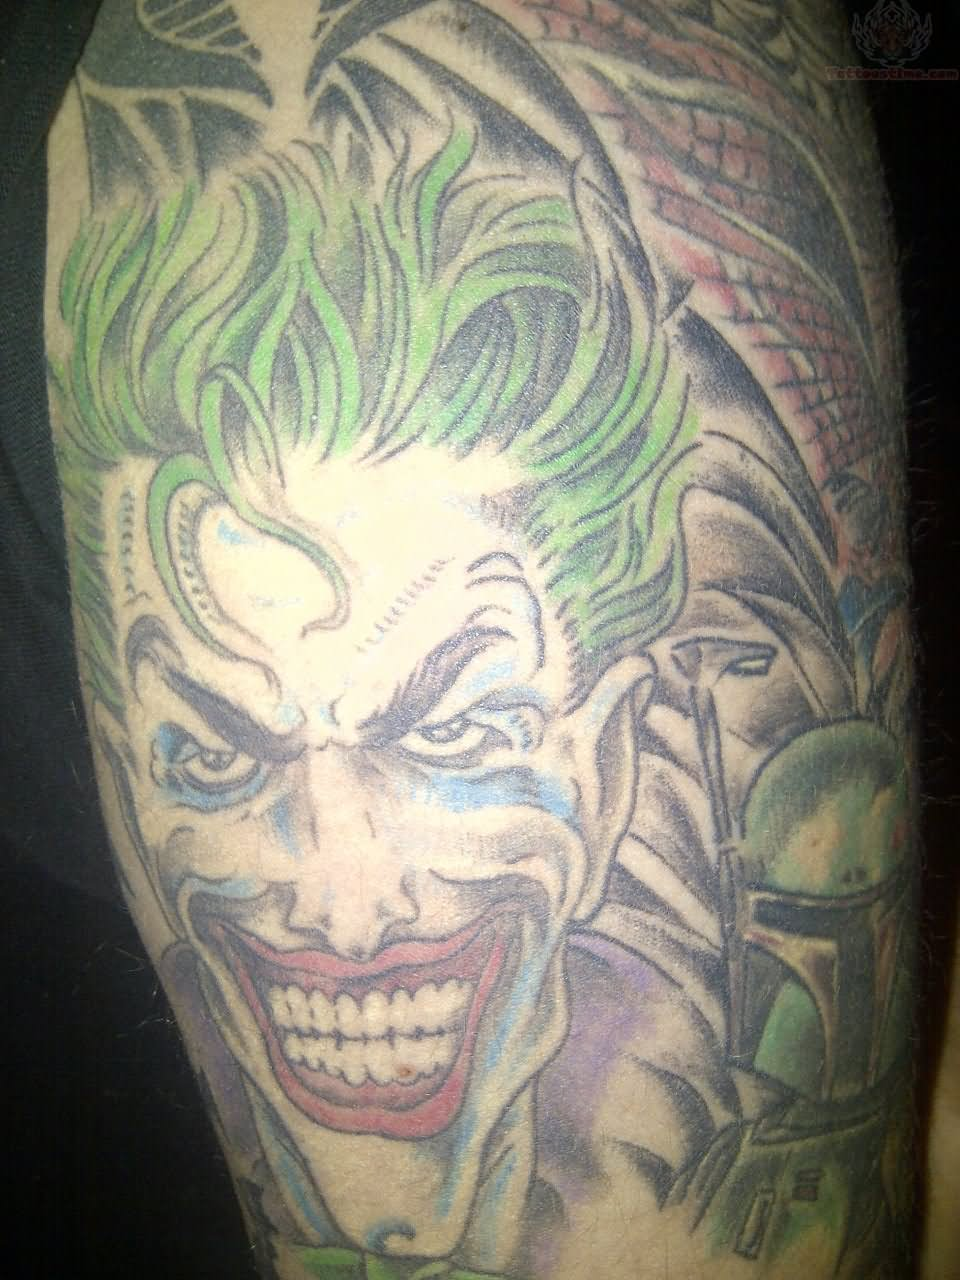 Best Joker Tattoo Designs